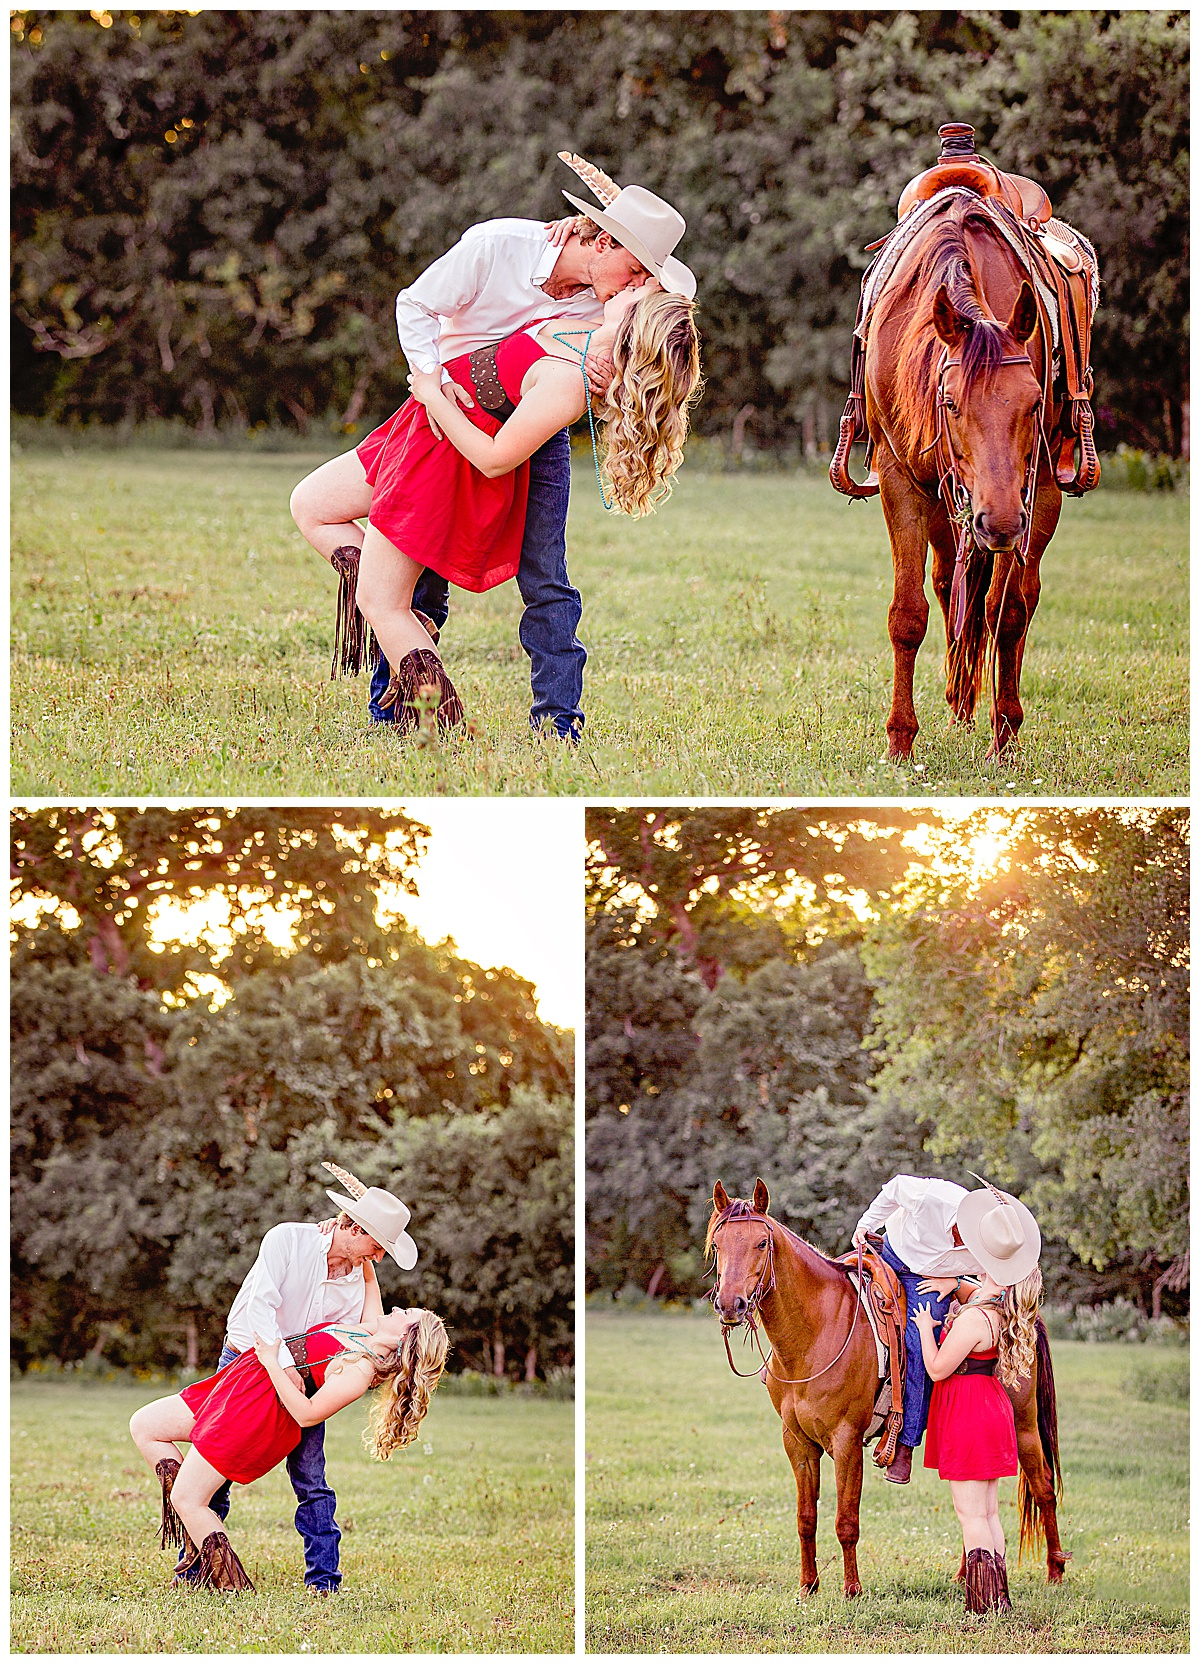 Rustic-Engagement-Session-Horse-Texas-Sunset-Carly-Barton-Photography_0001.jpg